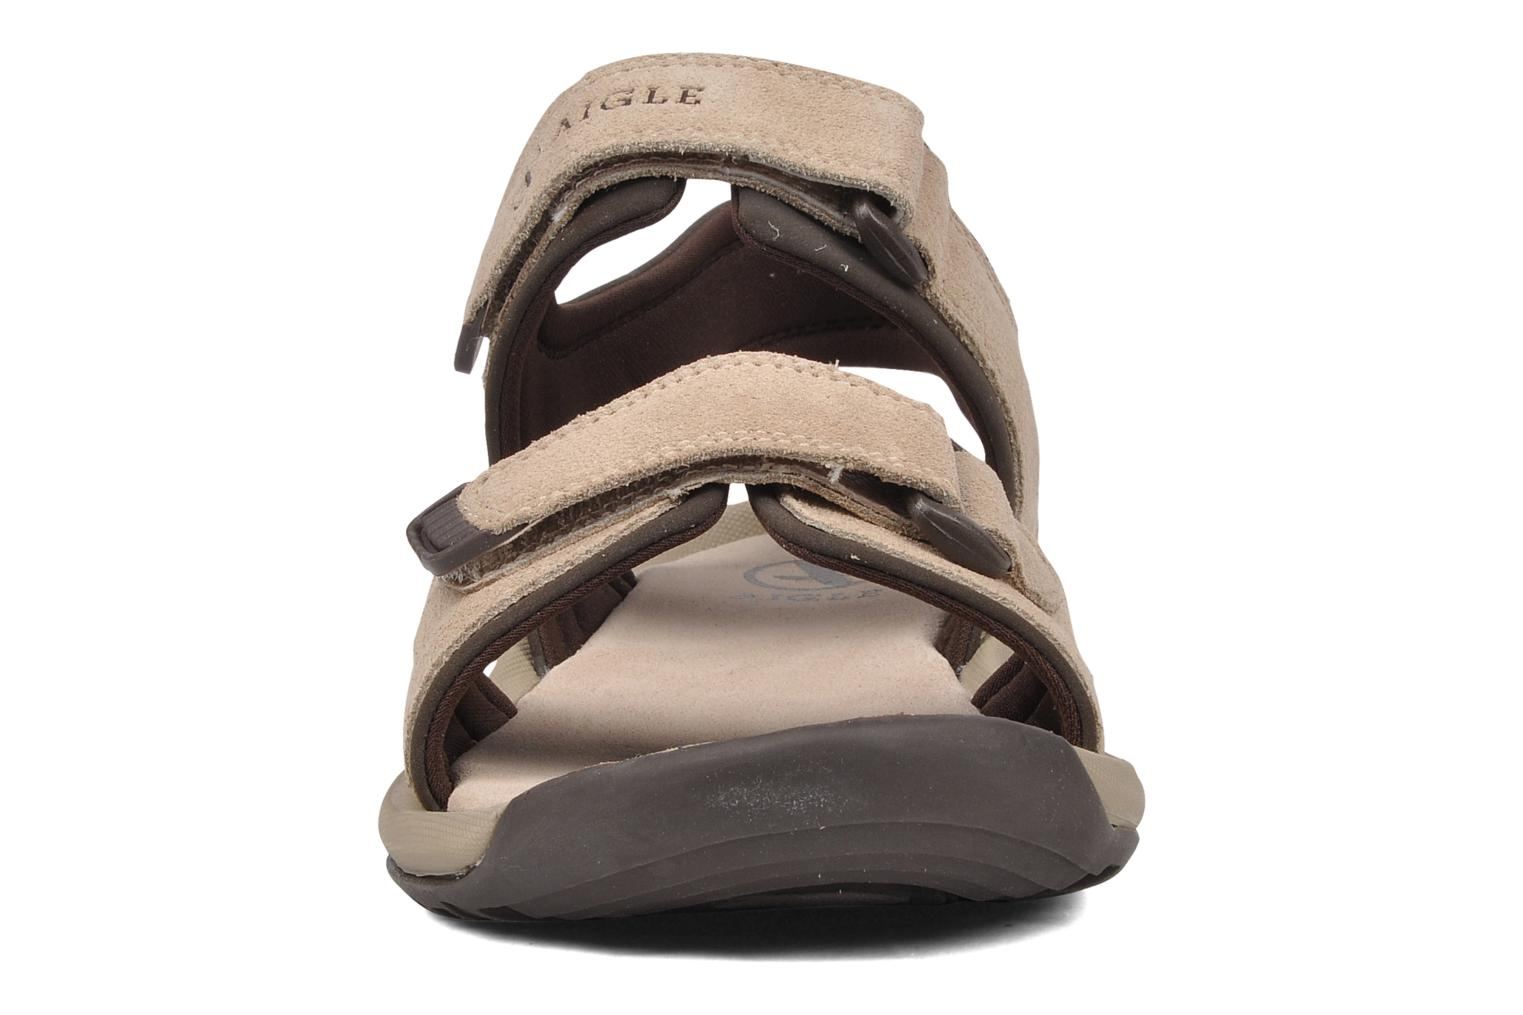 Slacke m Beige/brown